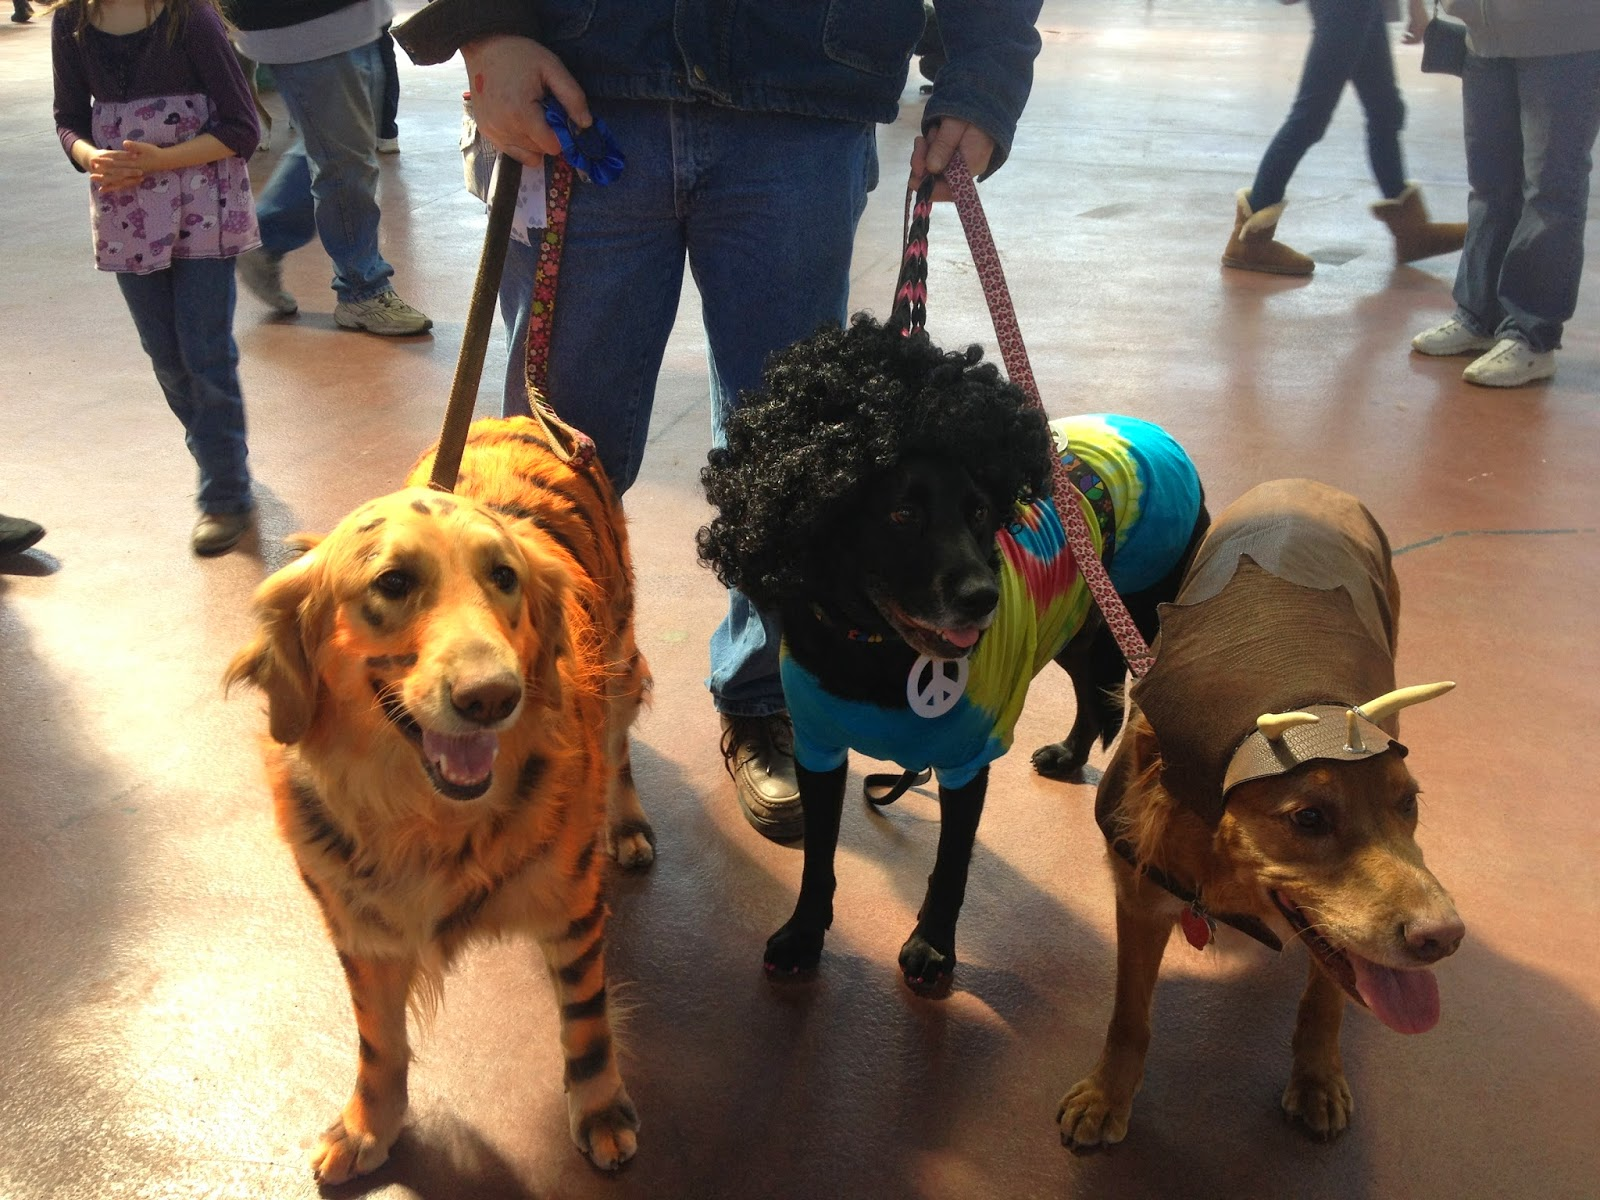 essays on service dogs Analysis of the discrimination against service animals essays service animals perform a wide variety of services and tasks for people with disabilities, and many disabled people would not be able to function effectively without their animals.